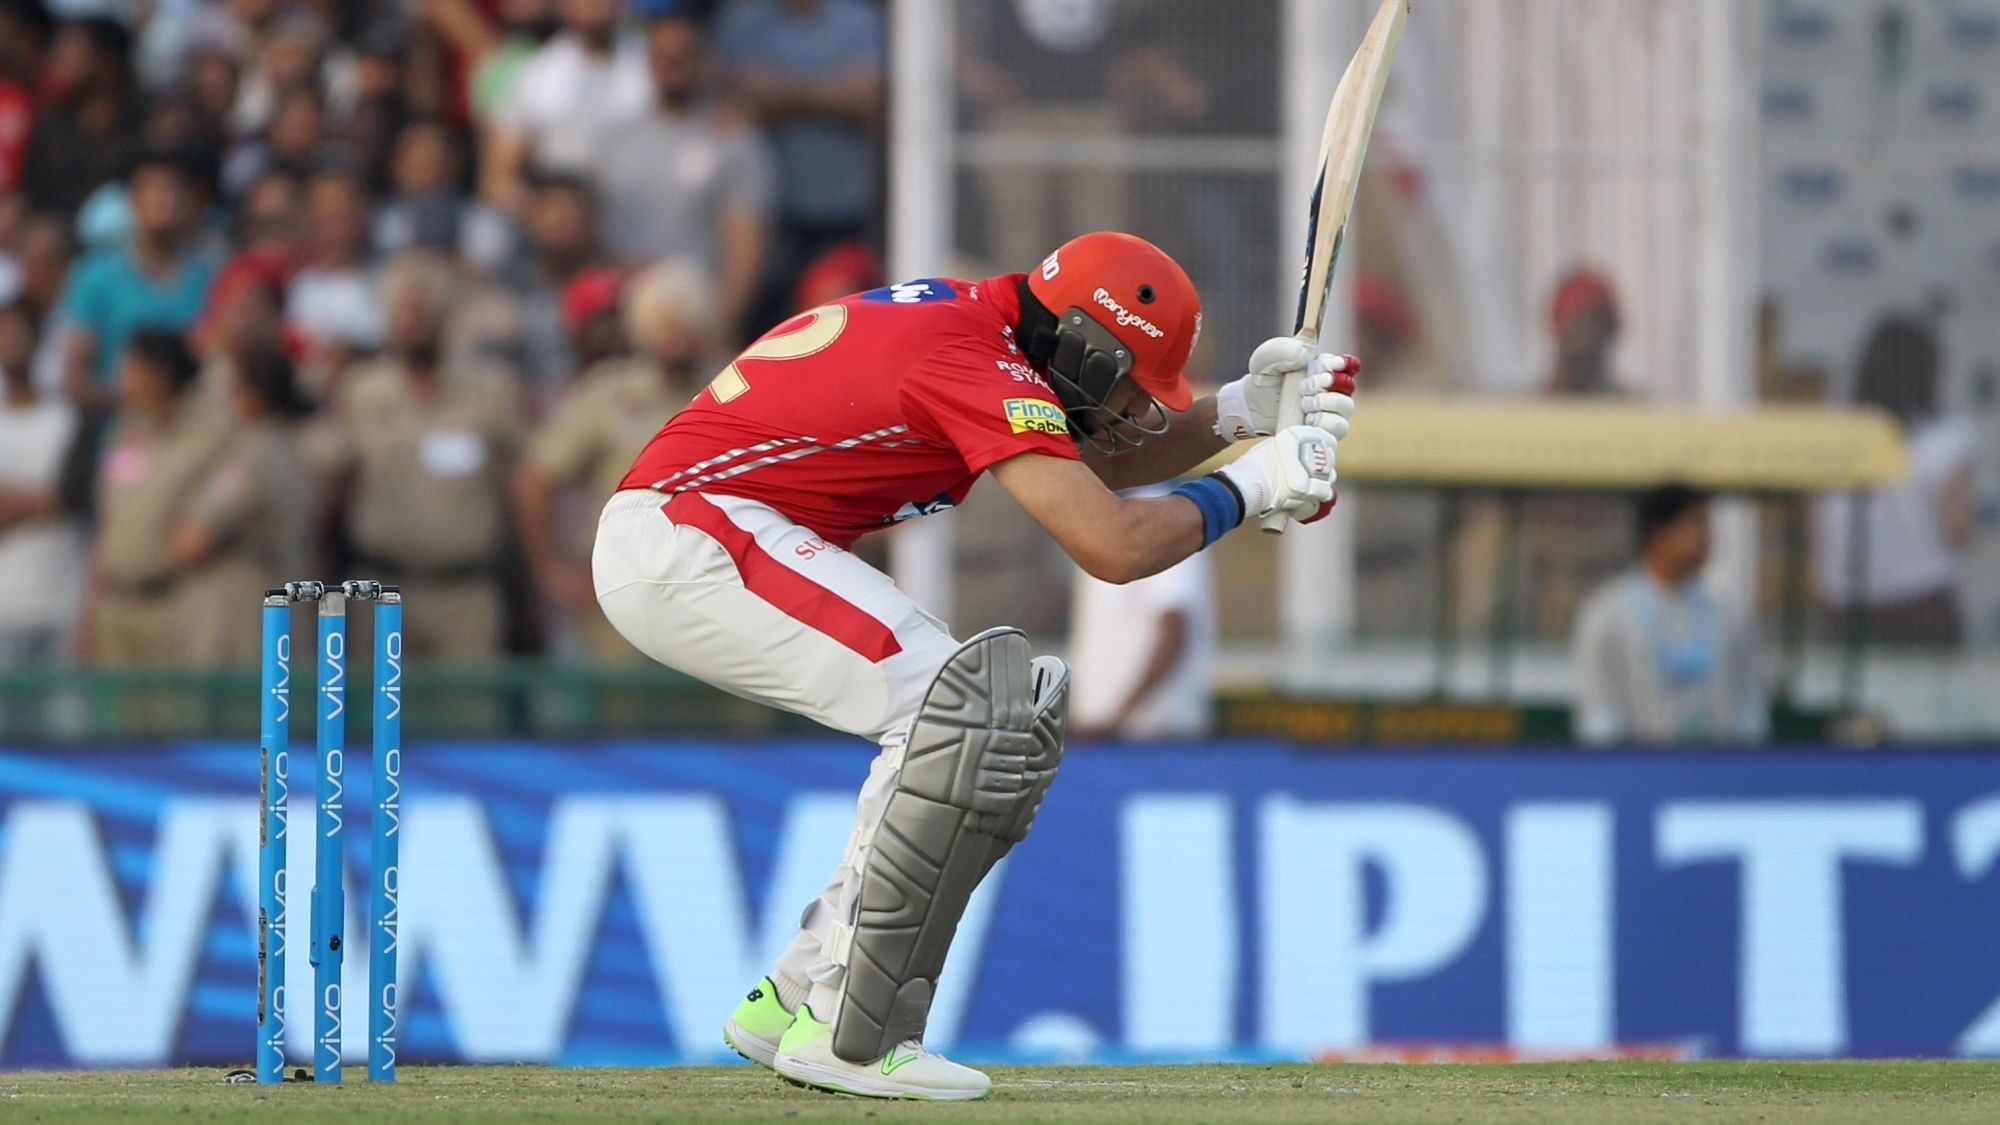 IPL 2018: KXIP coach Brad Hodge opens up about Yuvraj Singh's decline